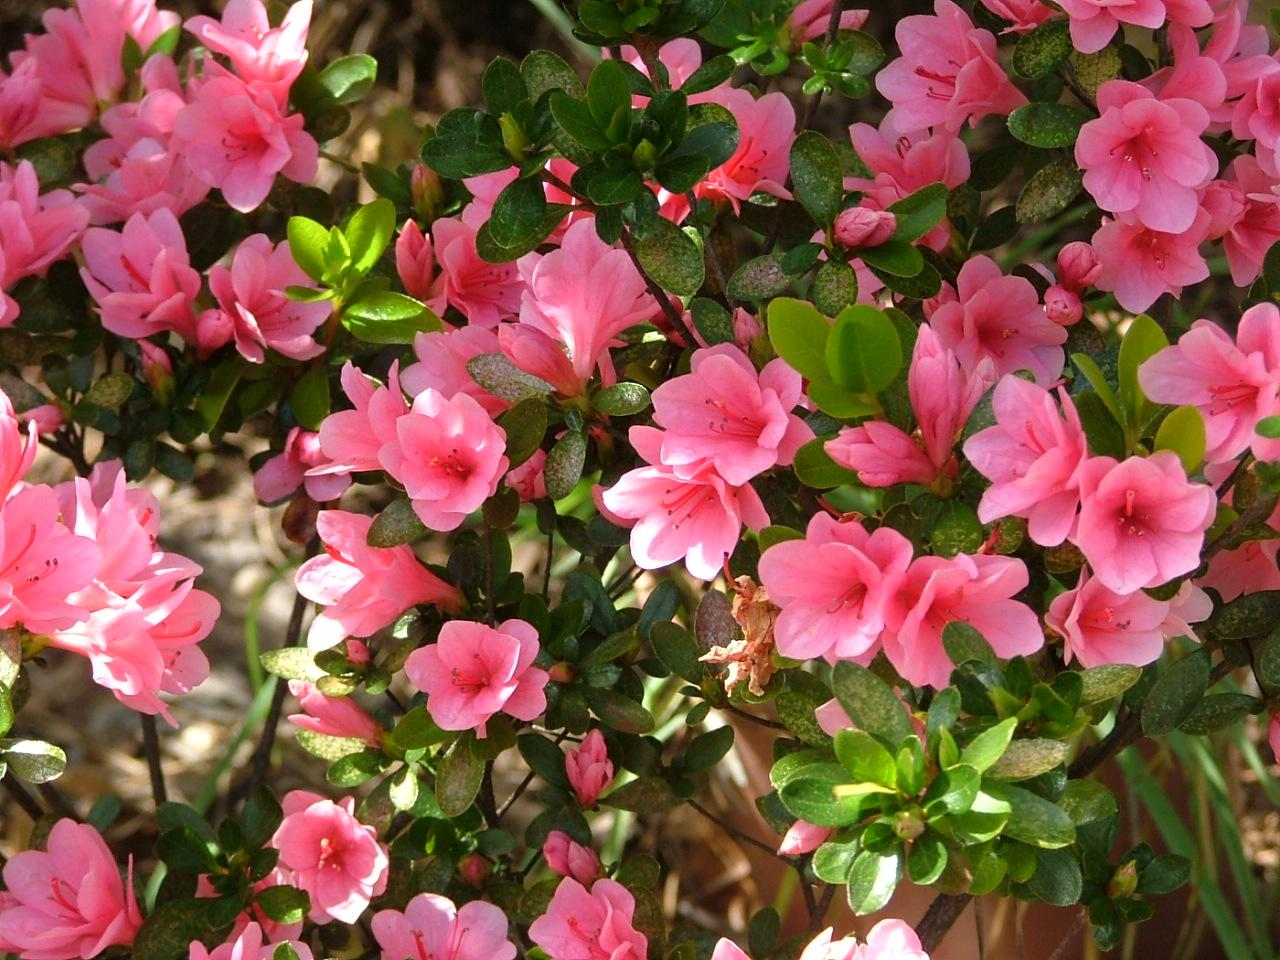 Azalea Varieties Plant Care And Growing Azaleas The Old